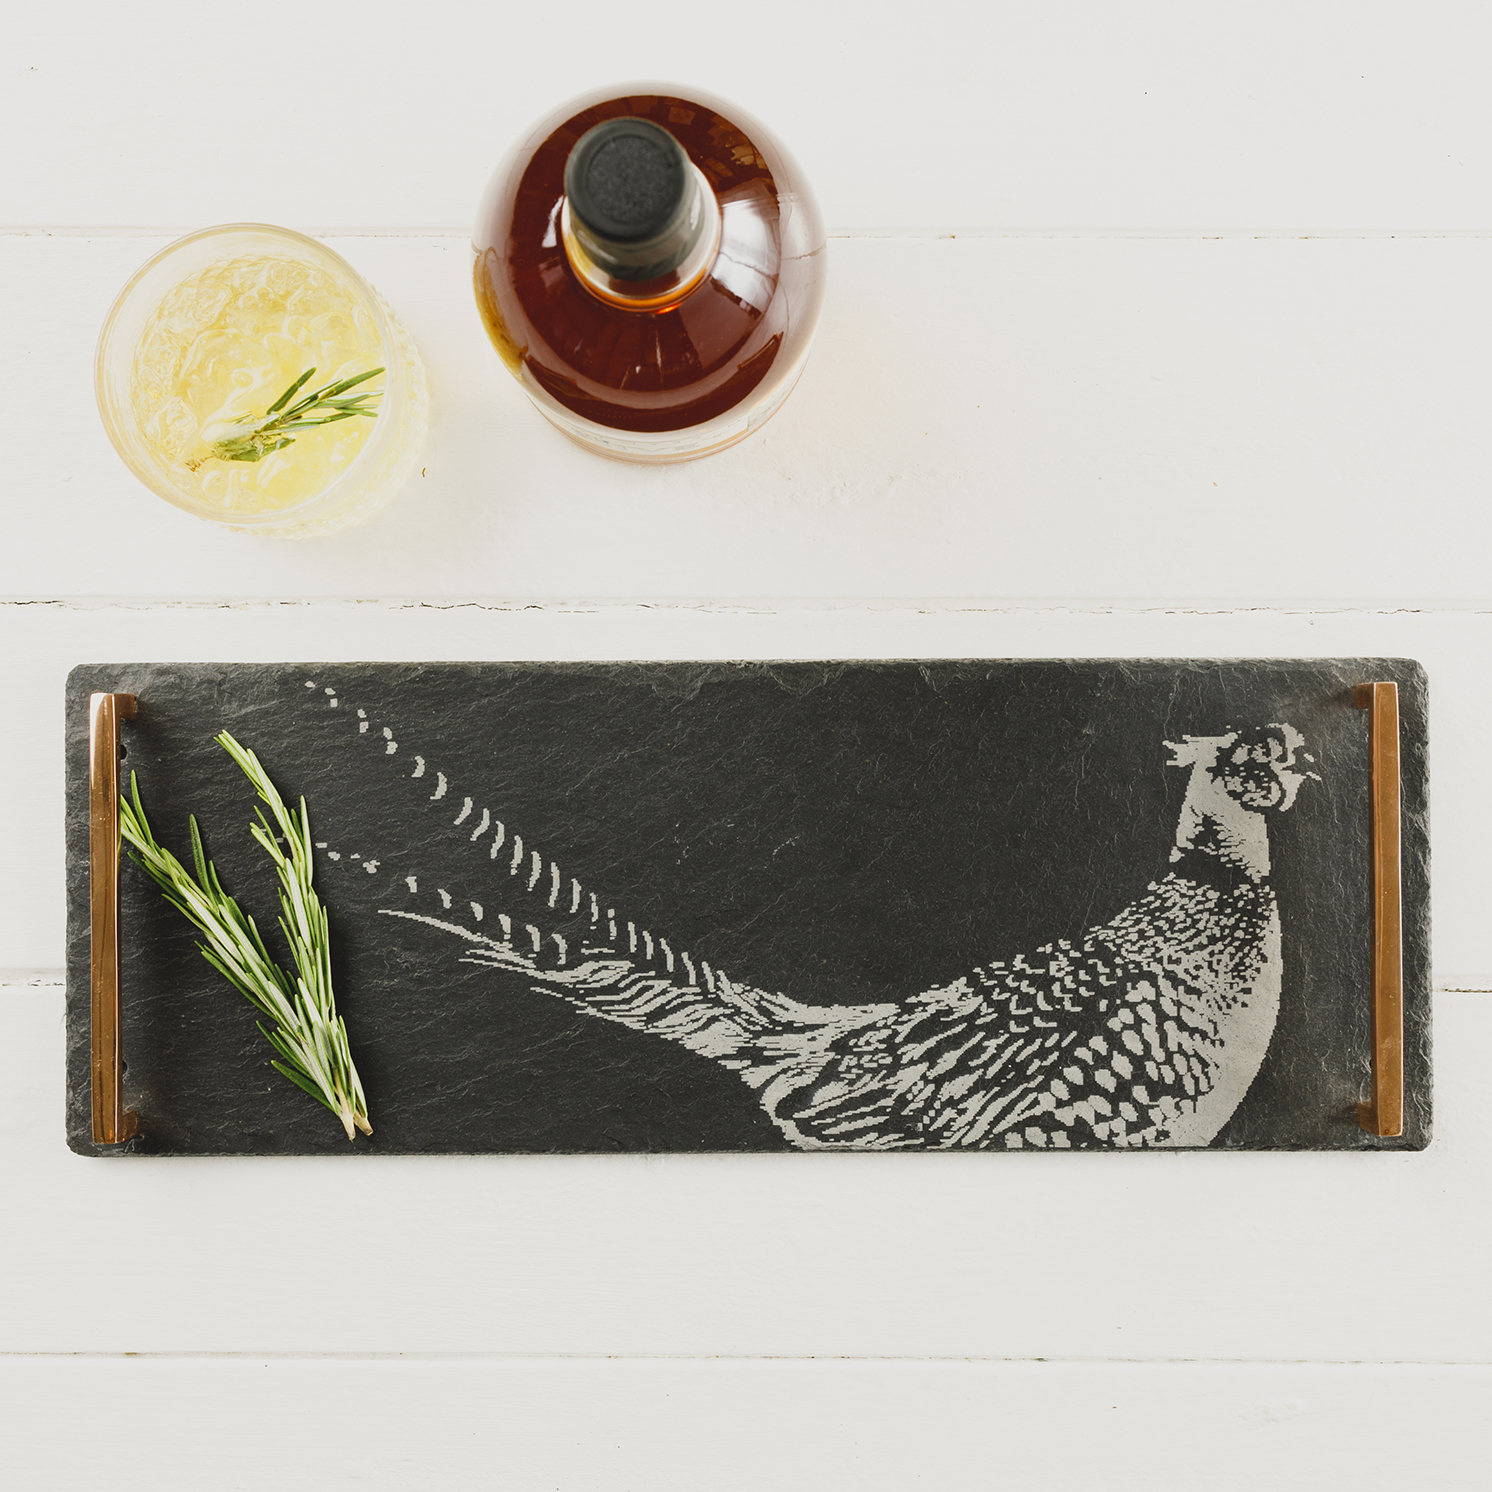 The Just Slate Company – Small Slate Pheasant Serving Tray with Copper Handles